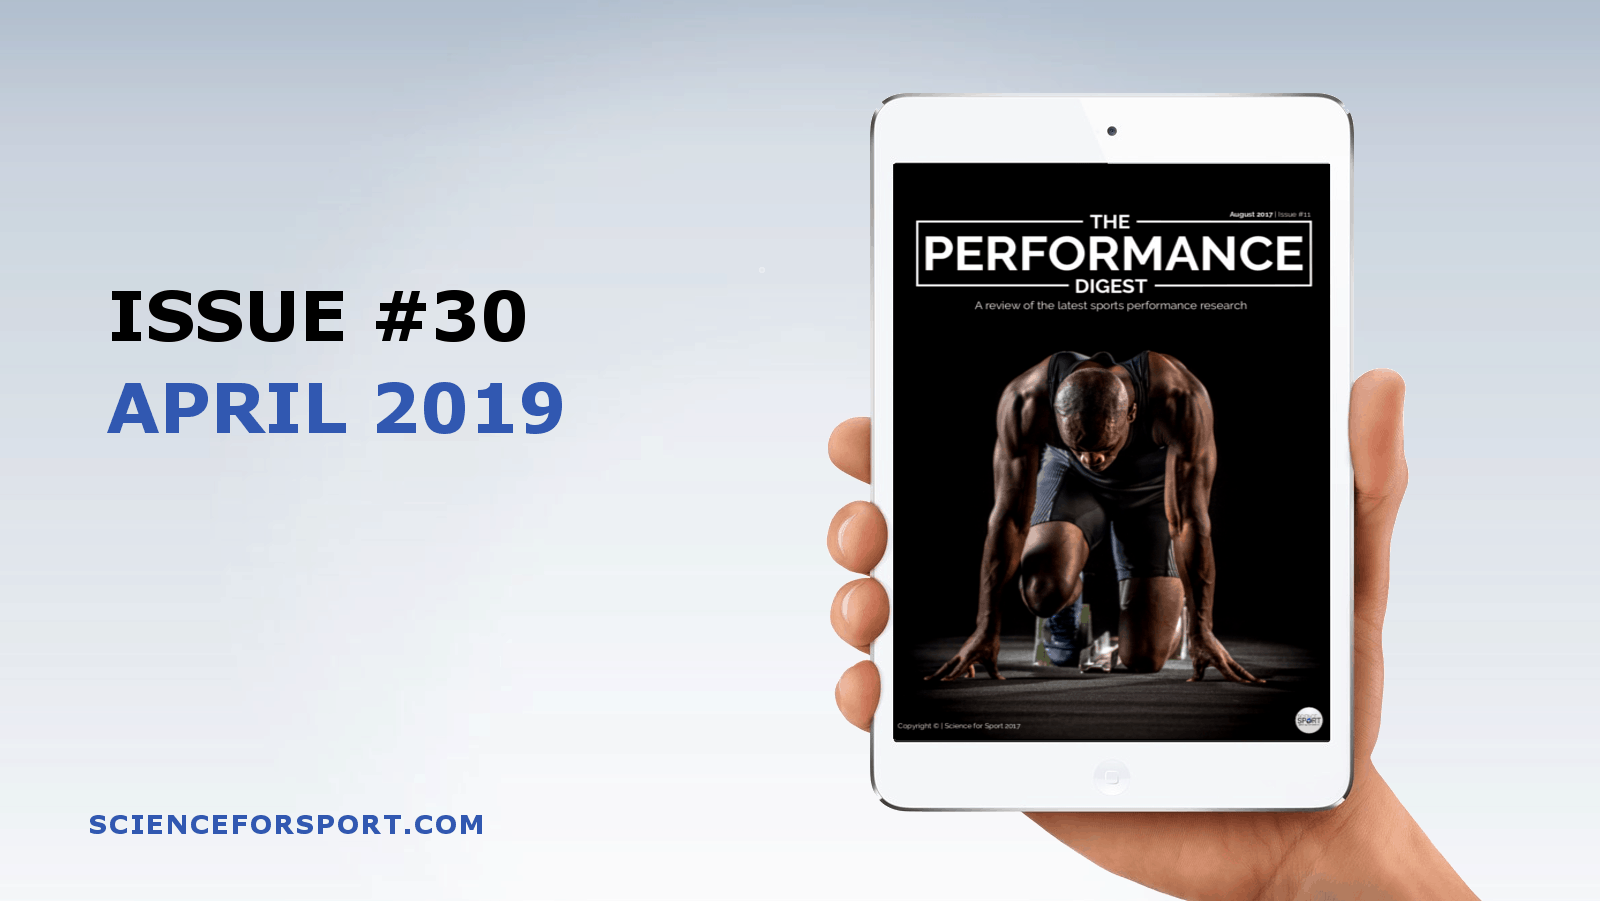 Performance Digest - Science for Sport